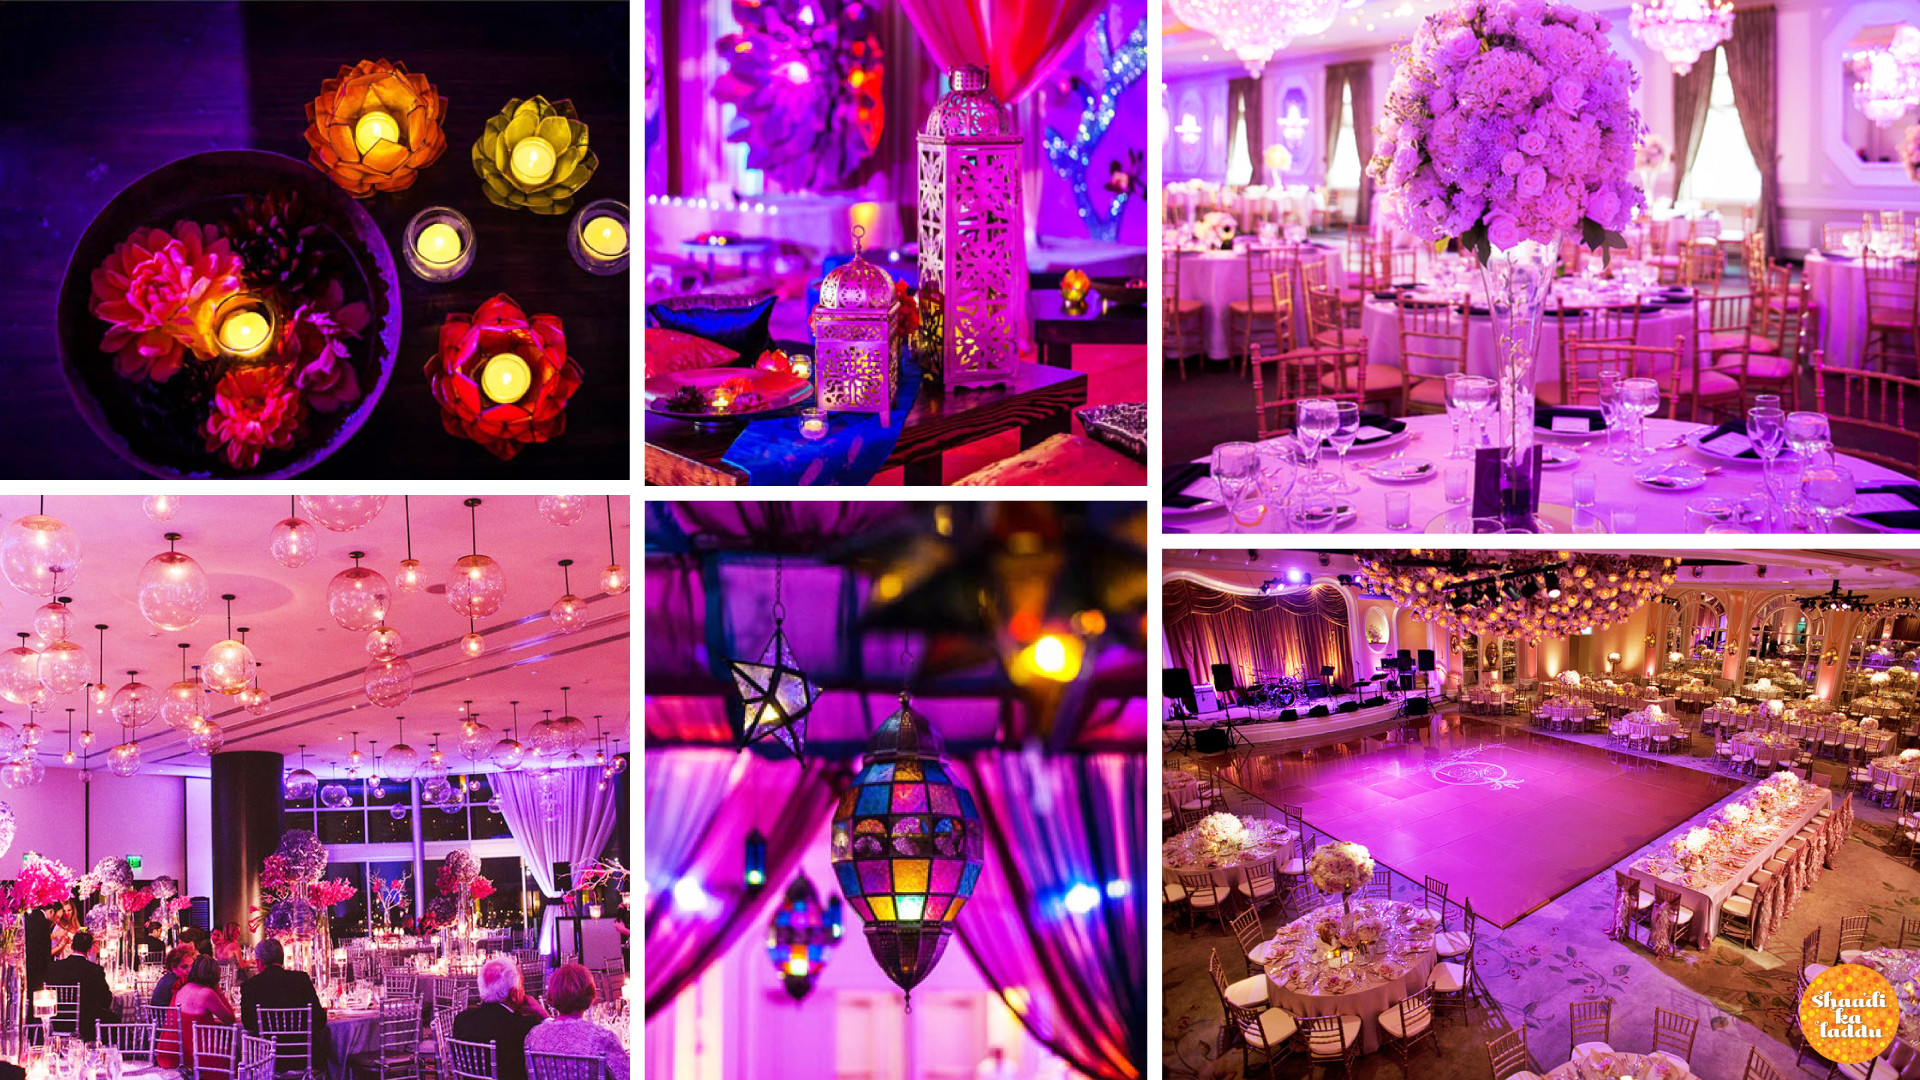 beautiful and creative usage of different schemes of light for wedding decoration with chick lamps and candles